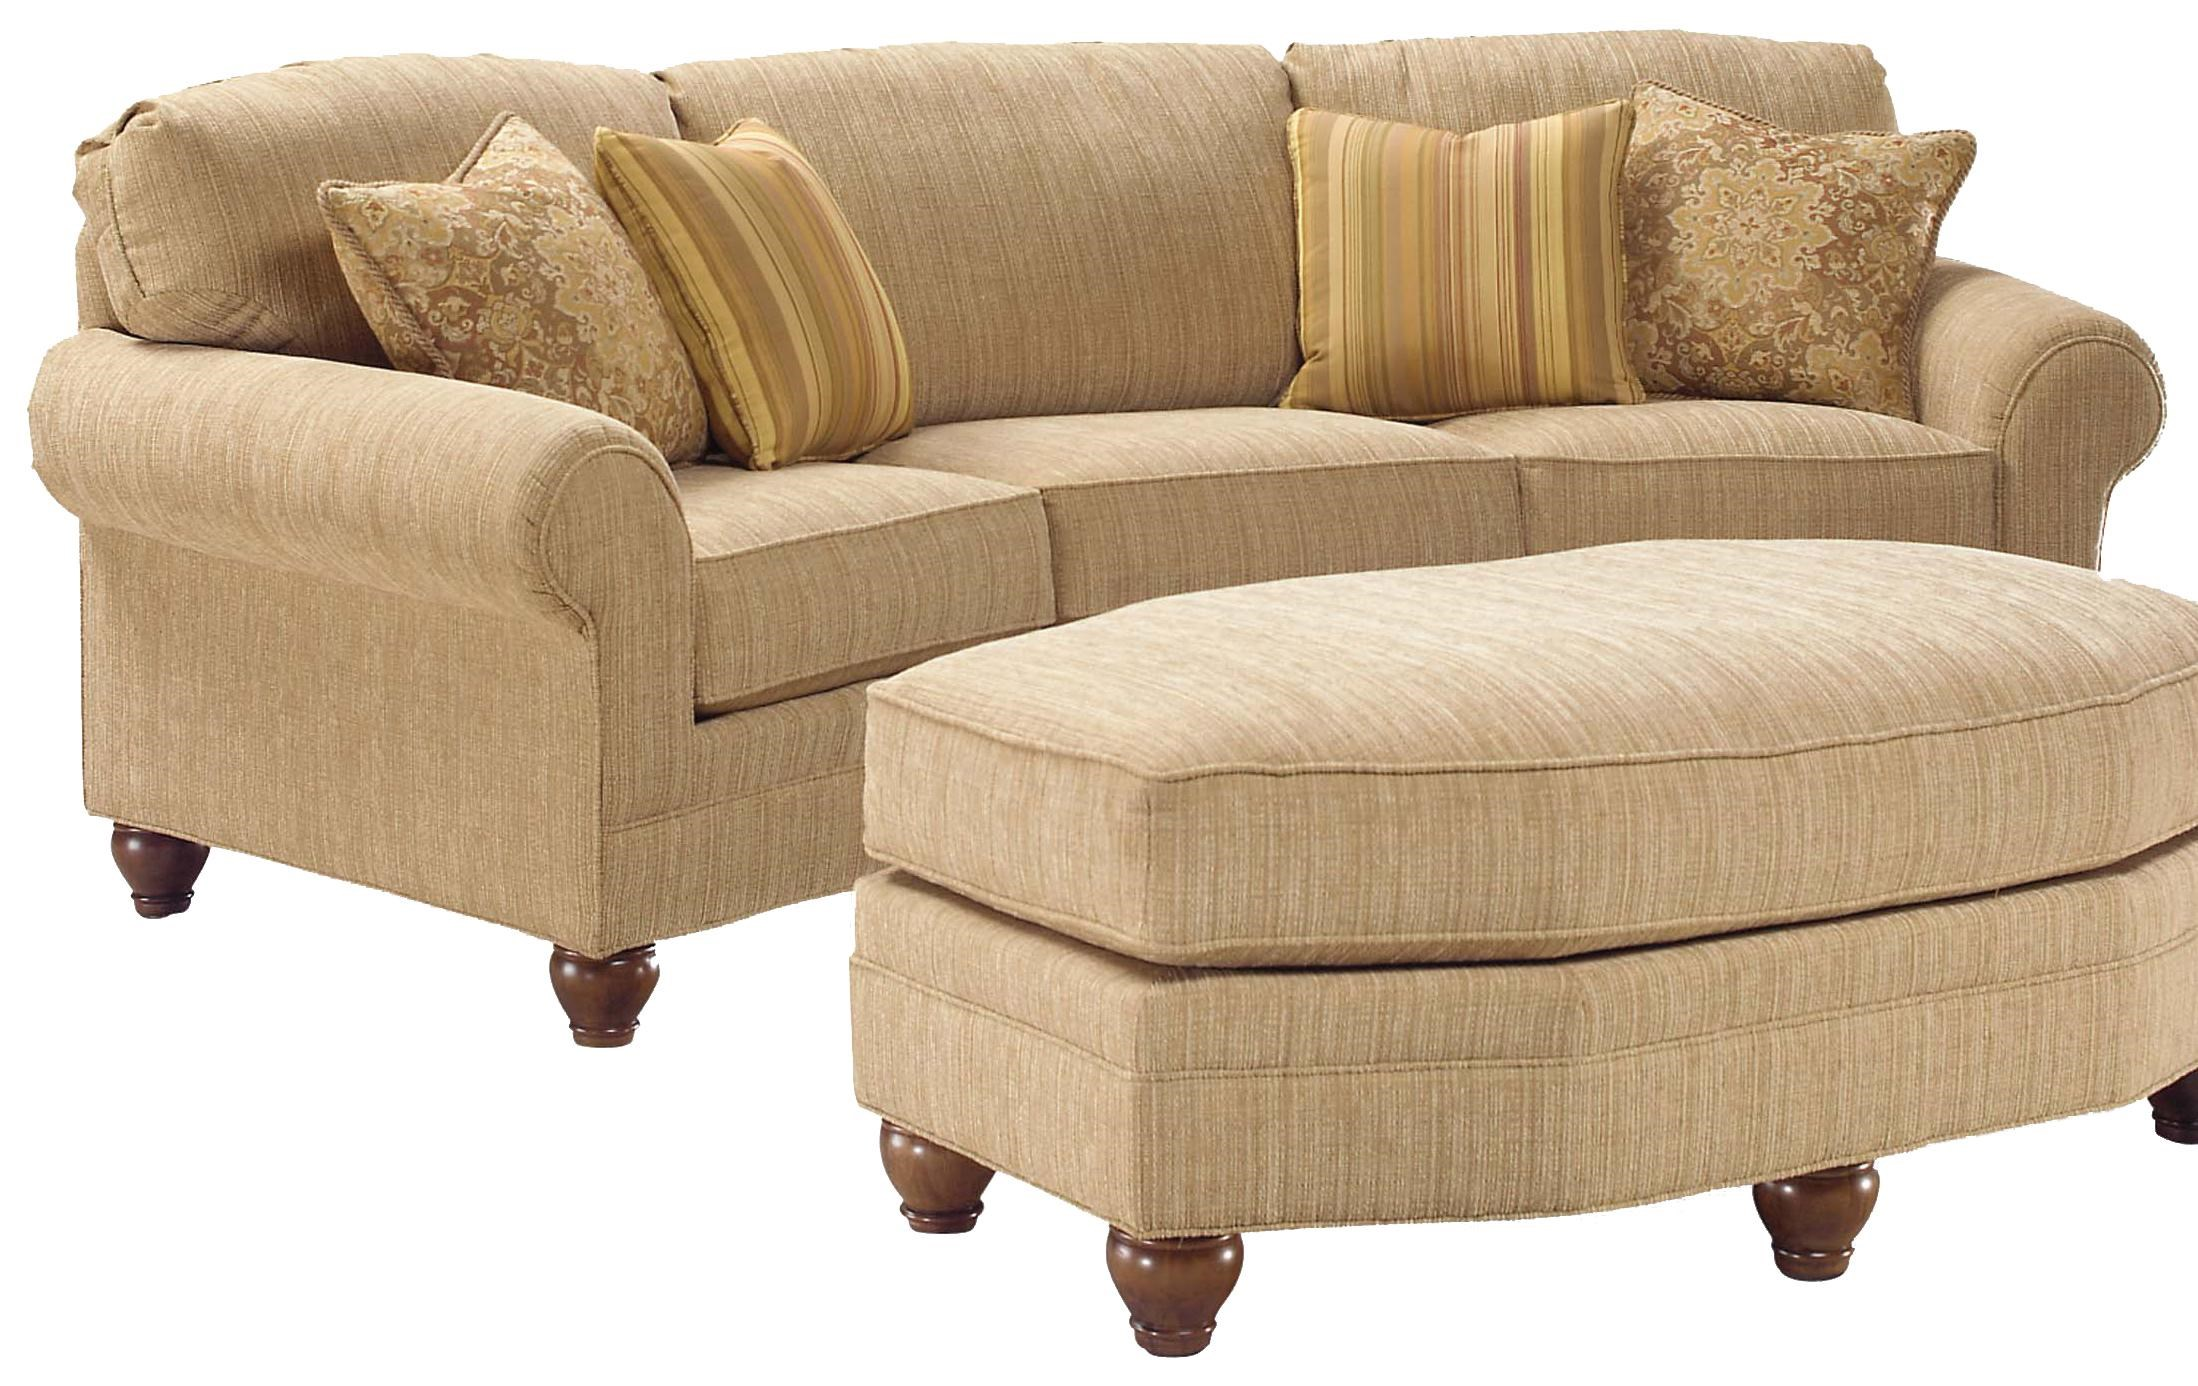 conversation sofas reviews outdoor round sofa with canopy curved fairfield accents